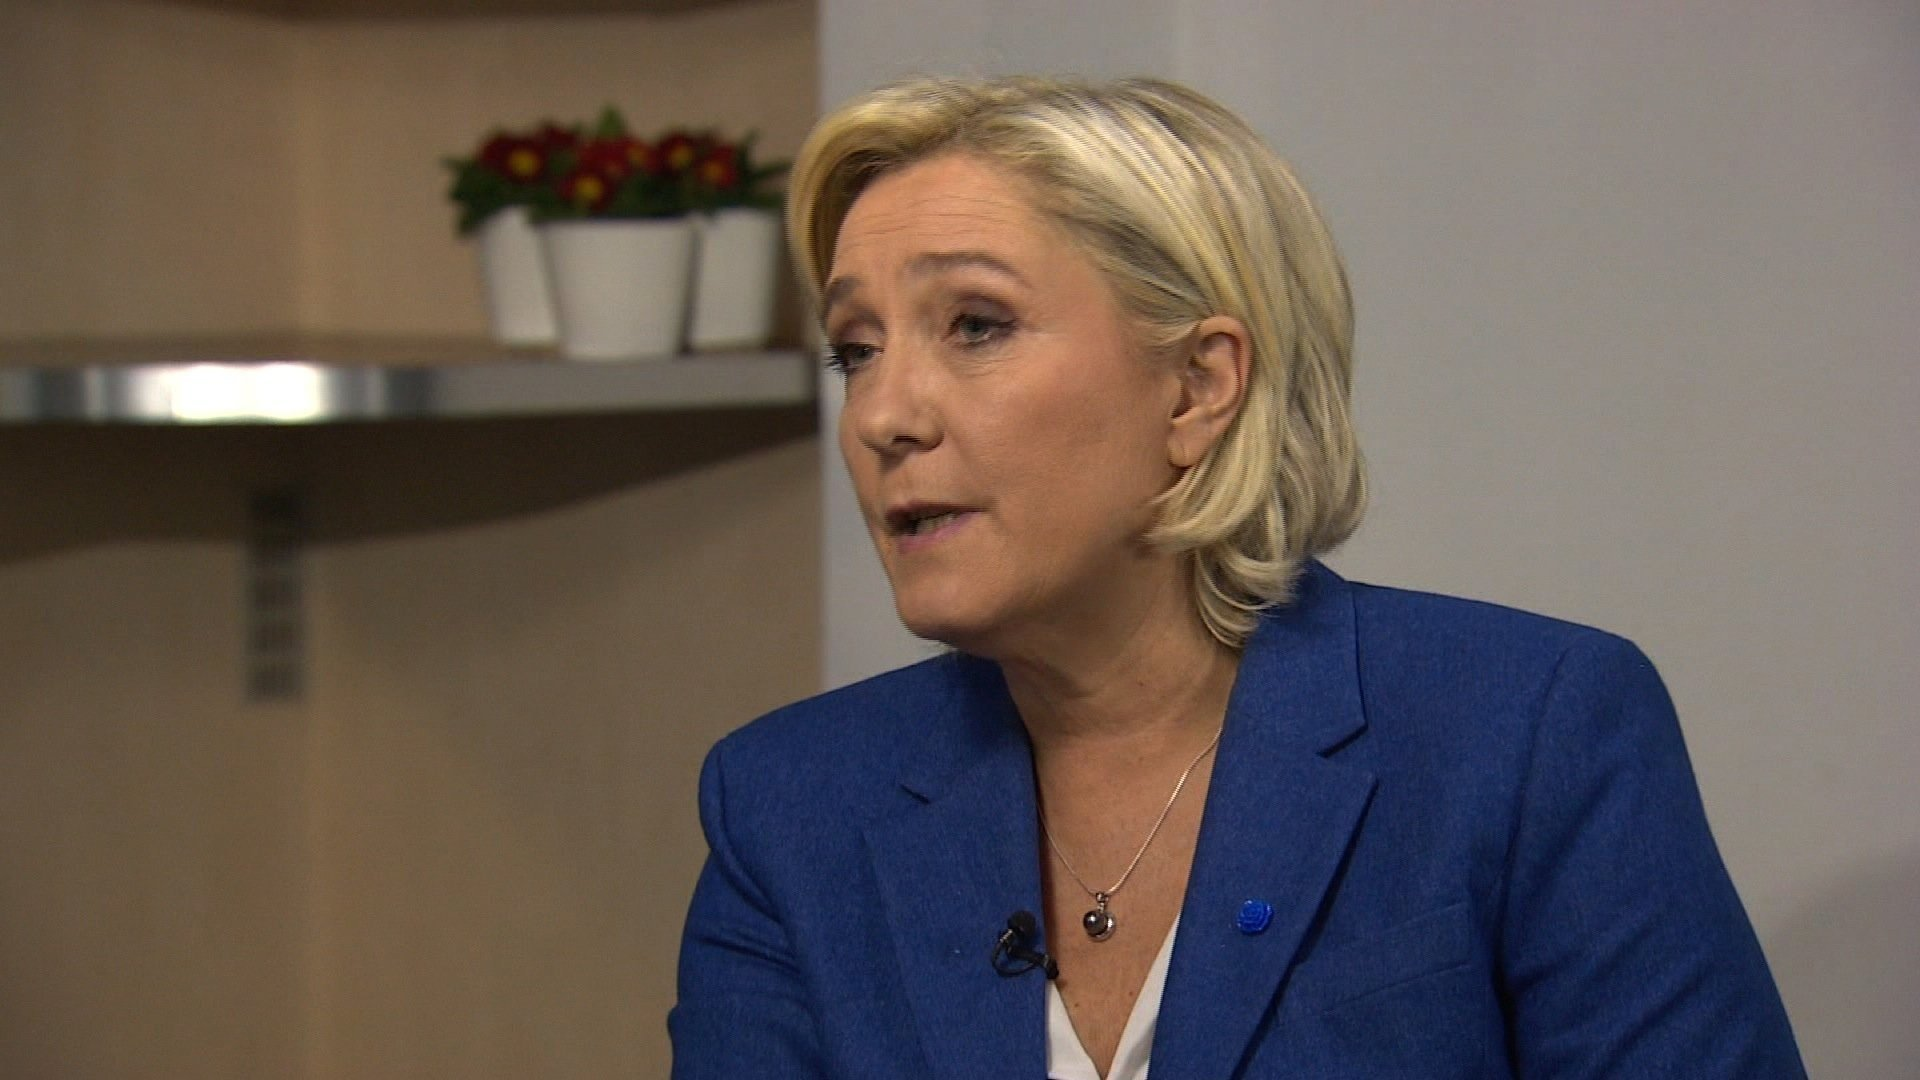 France's Le Pen refuses to repay European Union funds